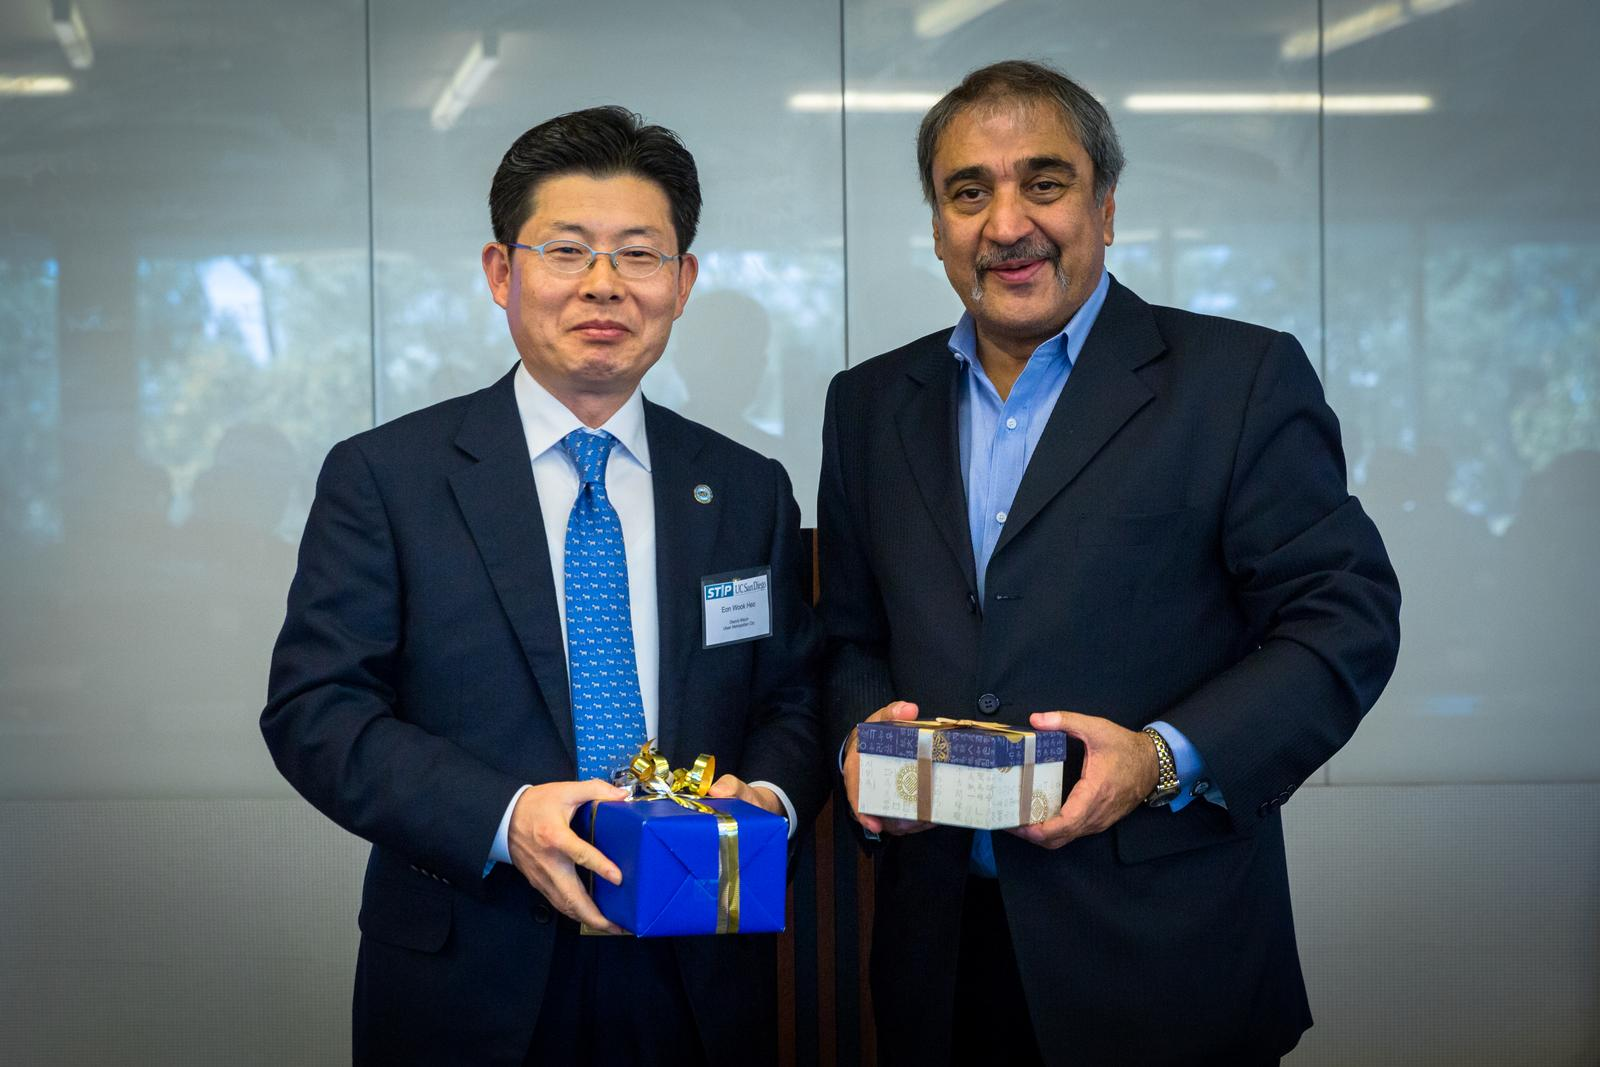 Ulsan Metropolitan City Deputy Mayor Eon Wook Heo and UC San Diego Chancellor Pradeep Khosla exchange gifts at the STIP launch in San Diego. Photo credit Shanni Jin/ Calit2